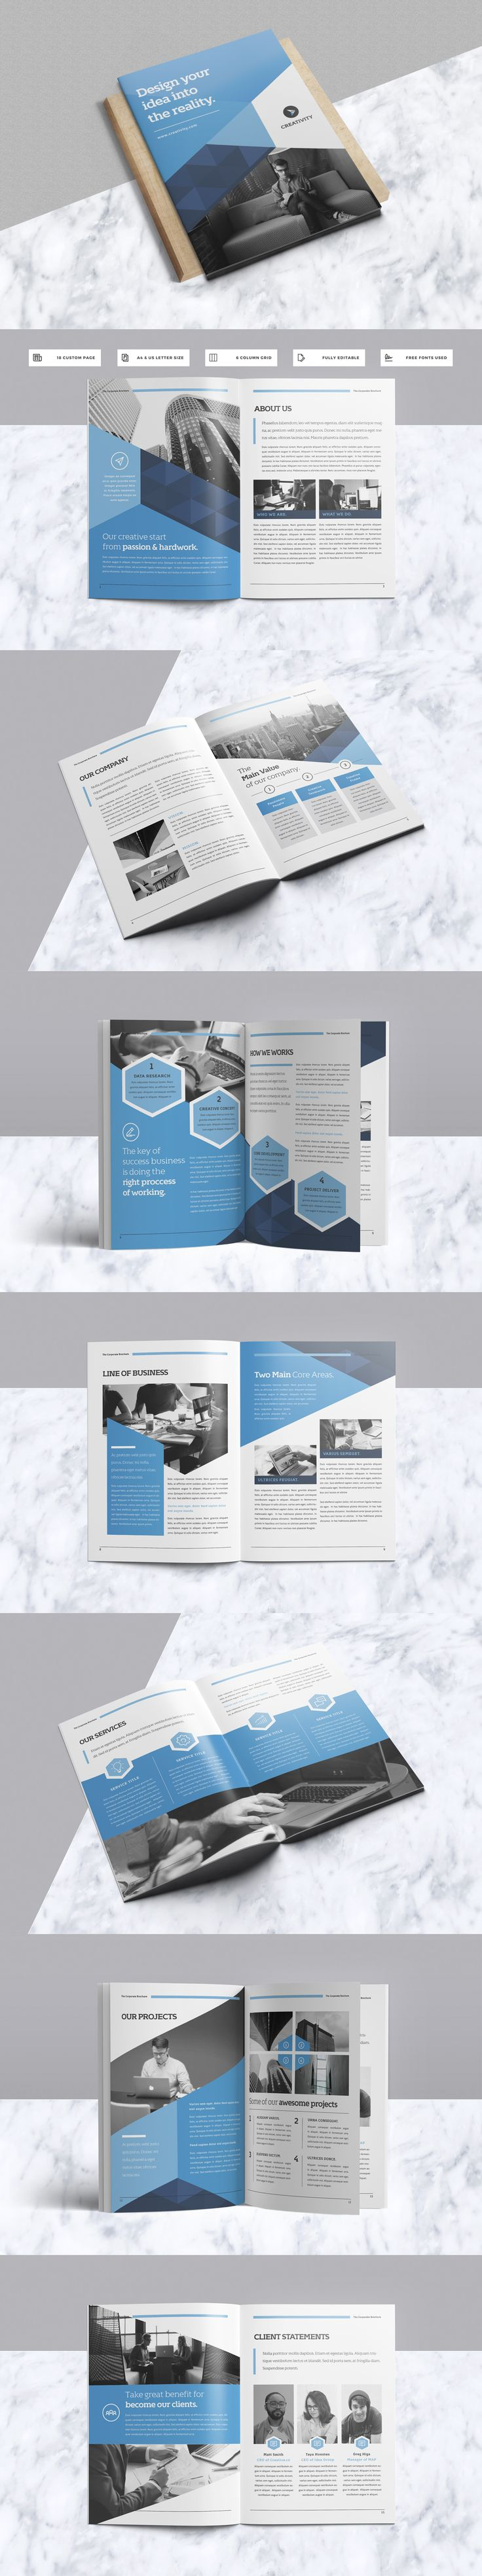 Modern & Professional Brochure Template InDesign INDD